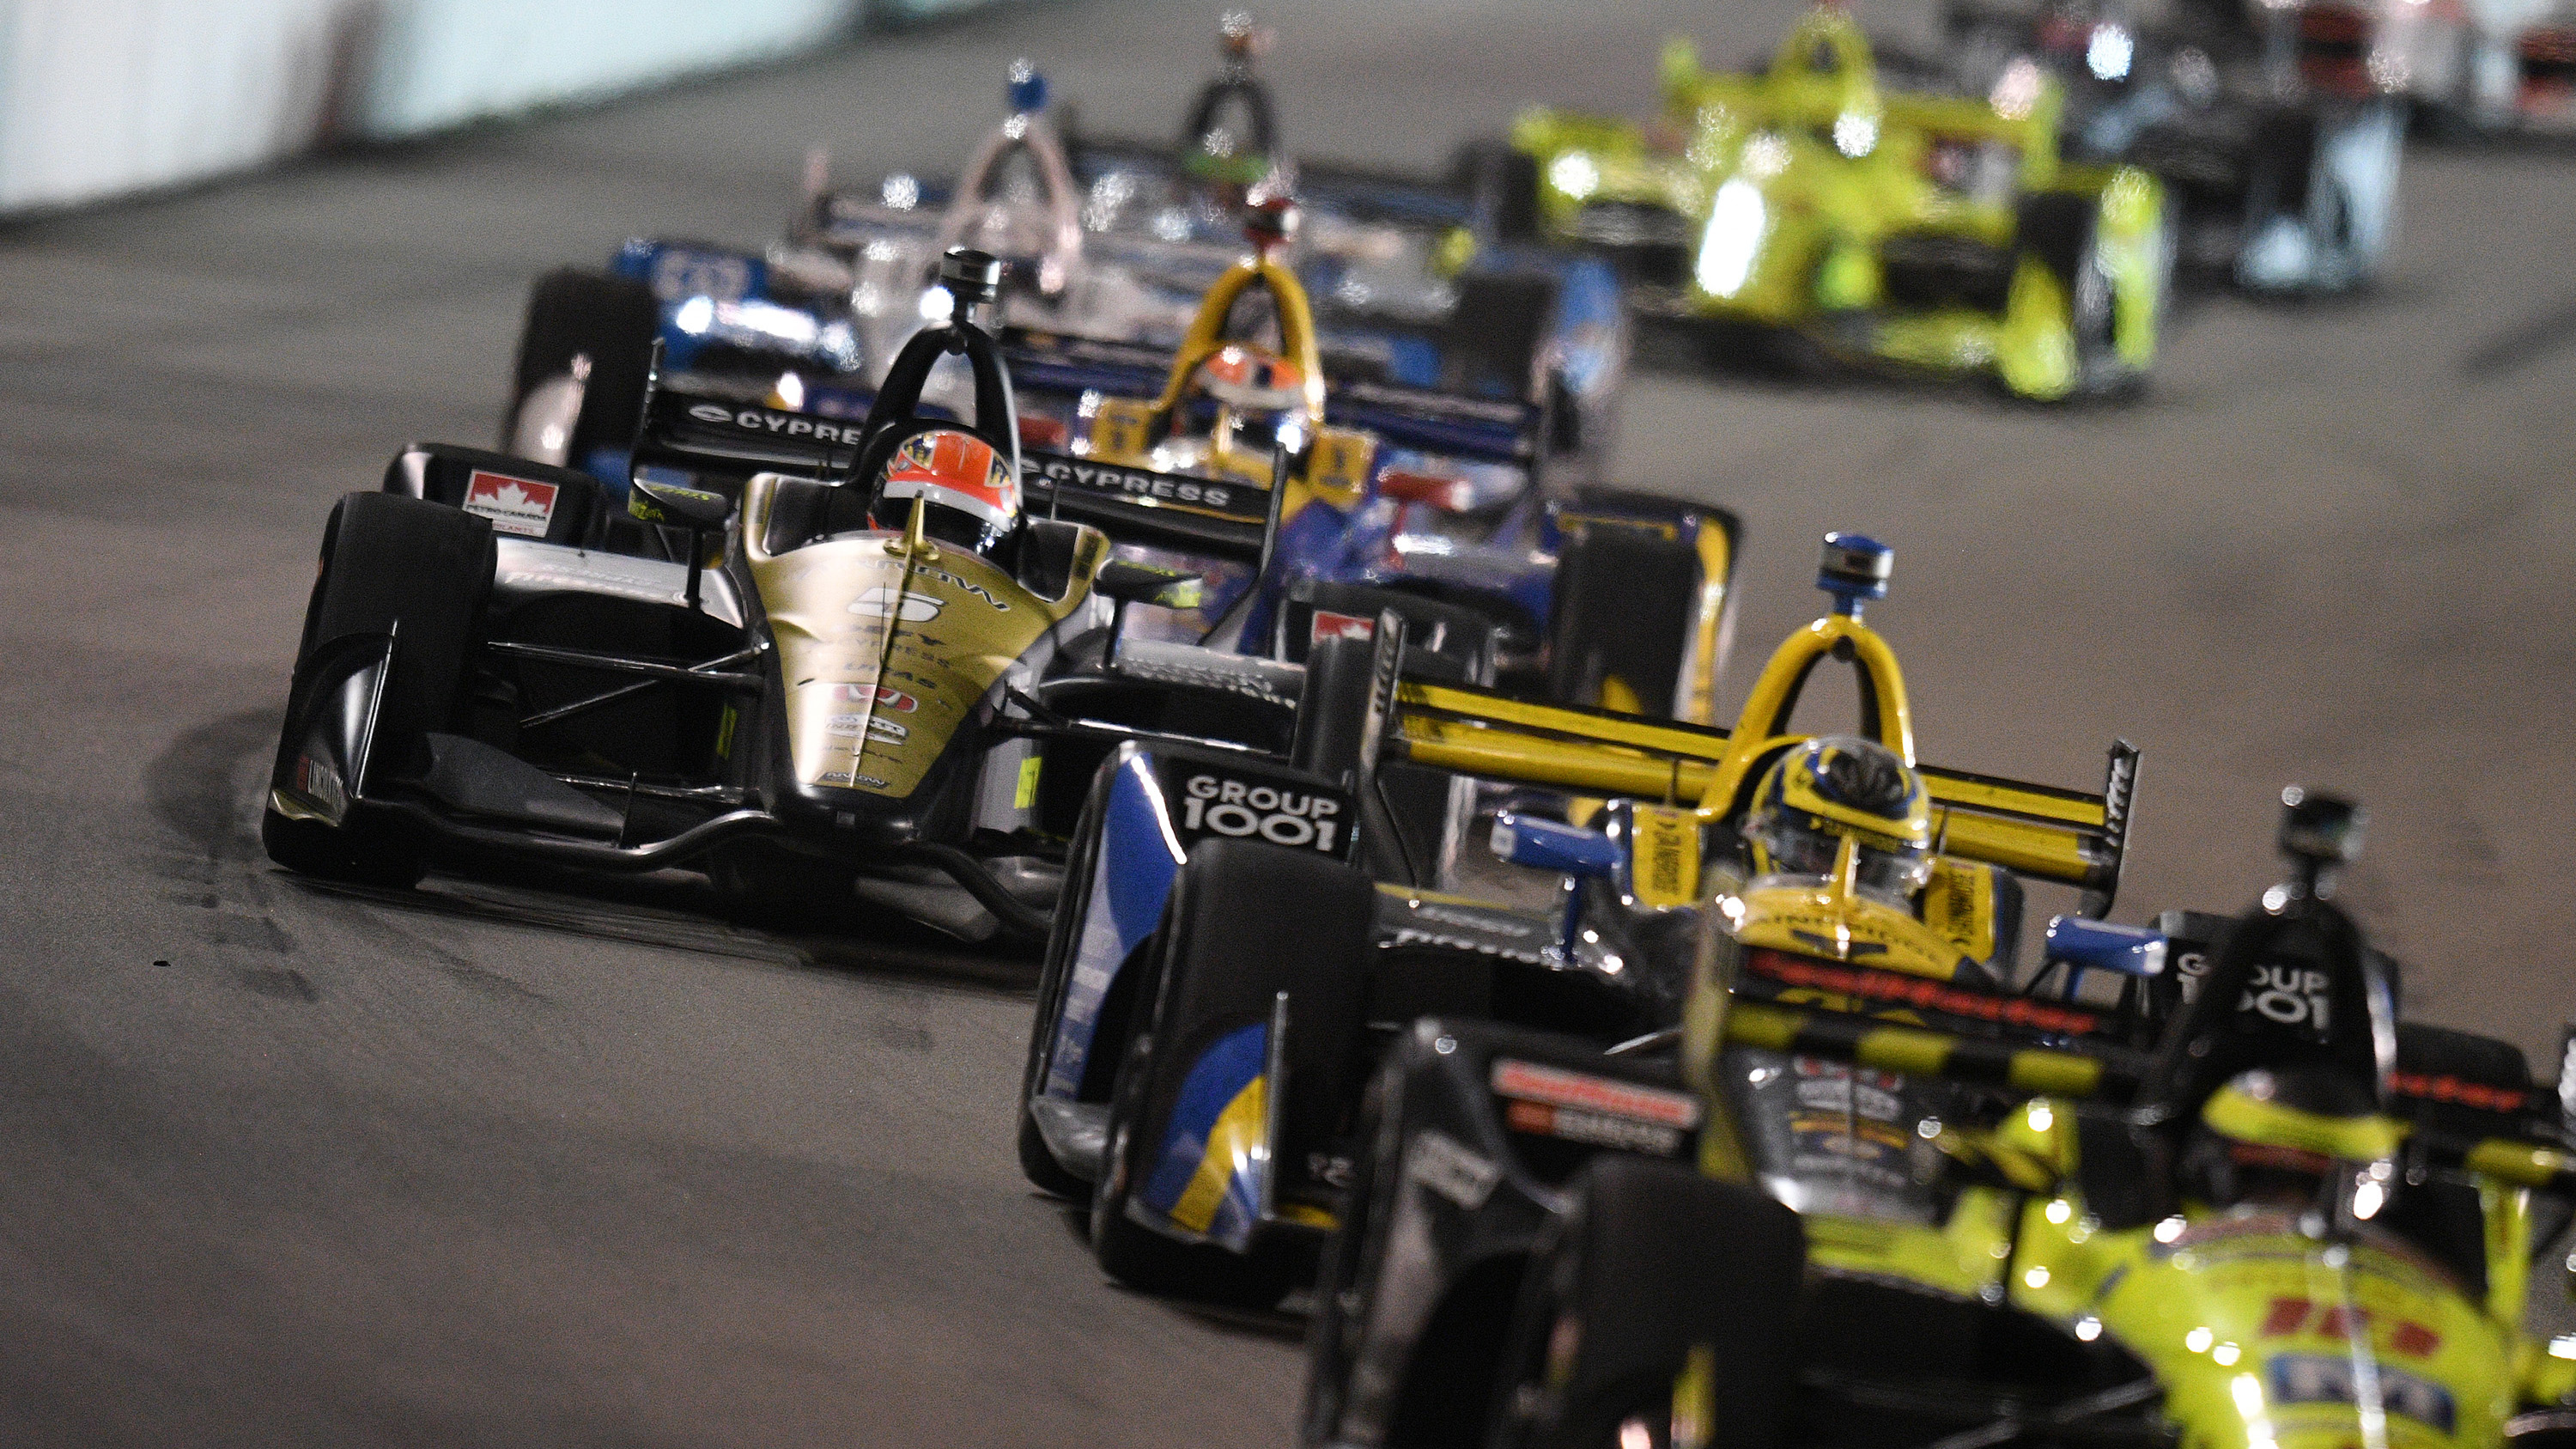 IndyCar's champion will be crowned at Laguna Seca on NBC